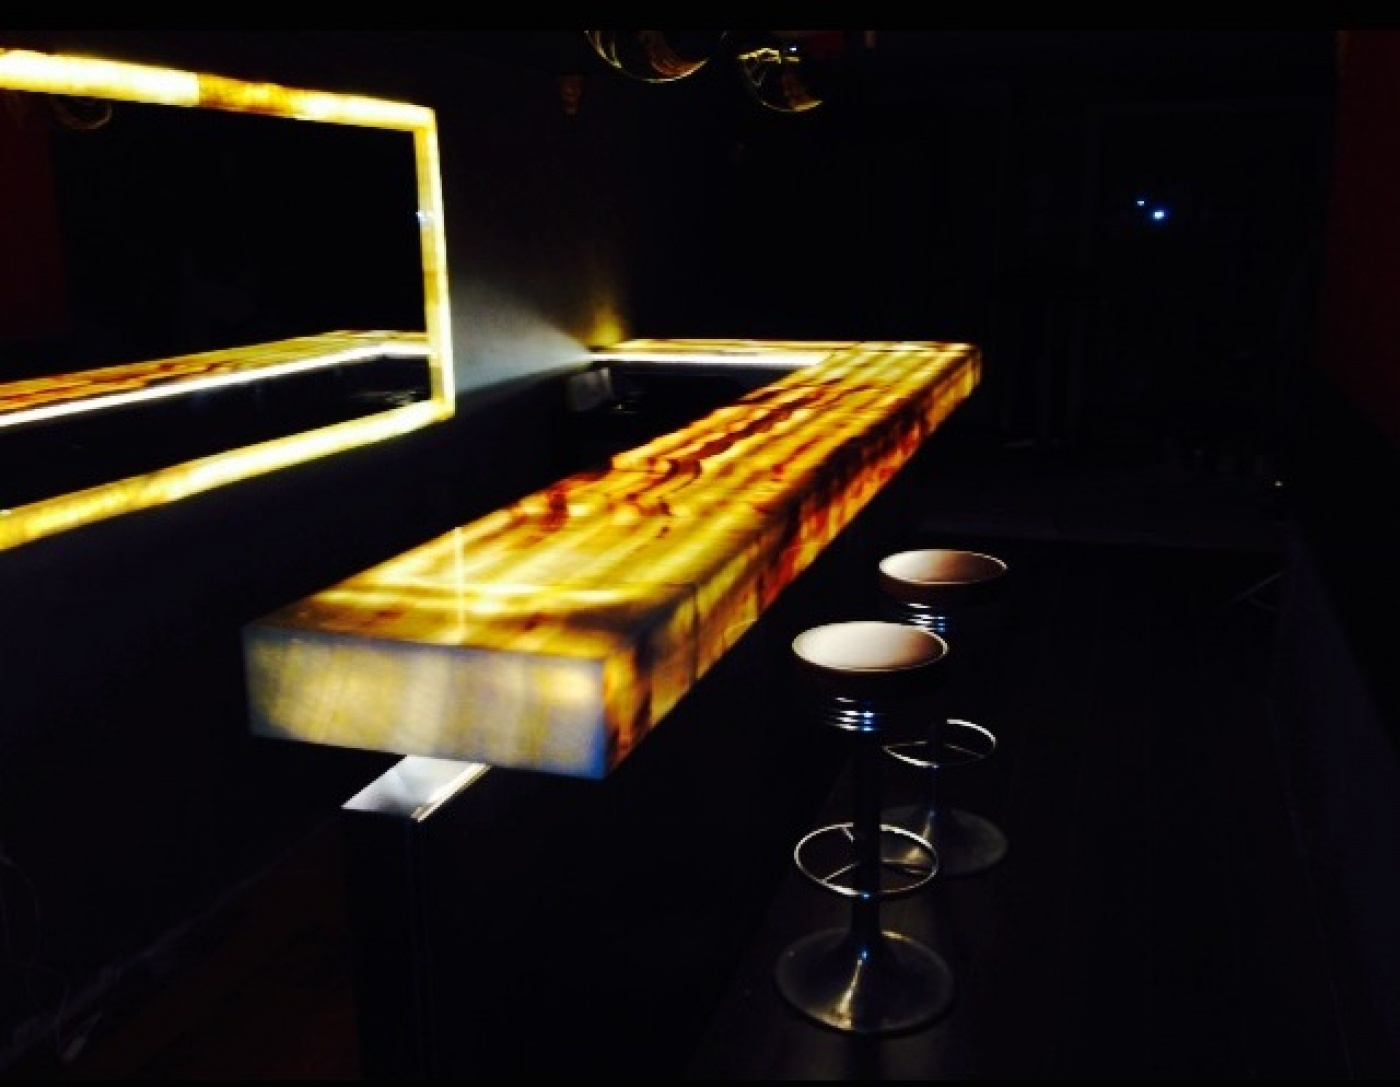 Onyx Miel backlight Bar, Aix-en-Provence